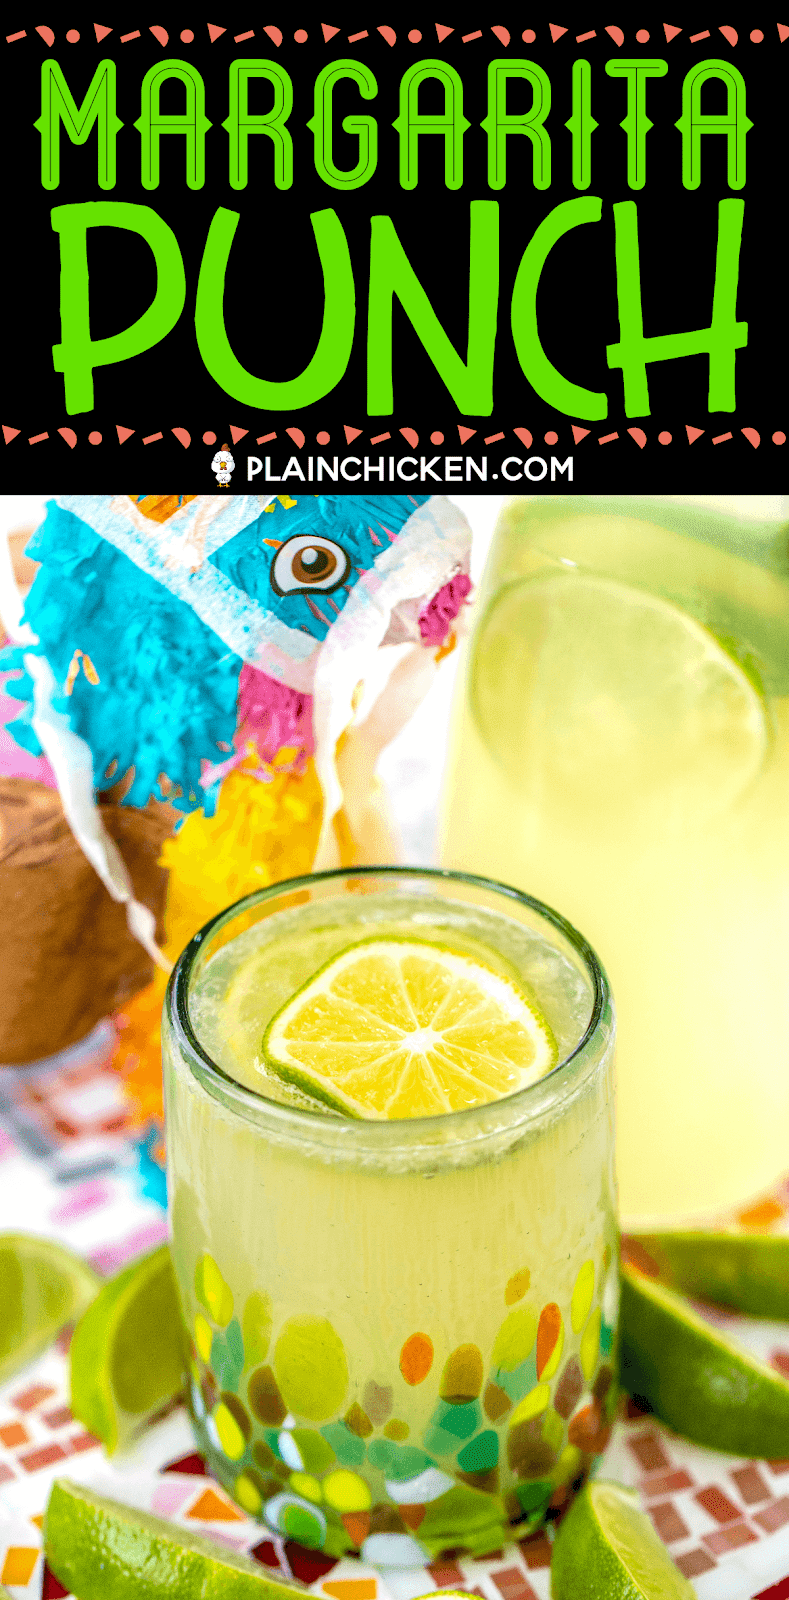 Margarita Punch - great for a crowd! SO easy to make and tastes great! Limeade, Lemonade, orange extract, Sprite, water and tequila. Can leave out the tequila for a virgin margarita punch! Great for Cinco de Mayo, dinner parties and tailgating! #drink #cincodemayo #nonalcoholic #tequila